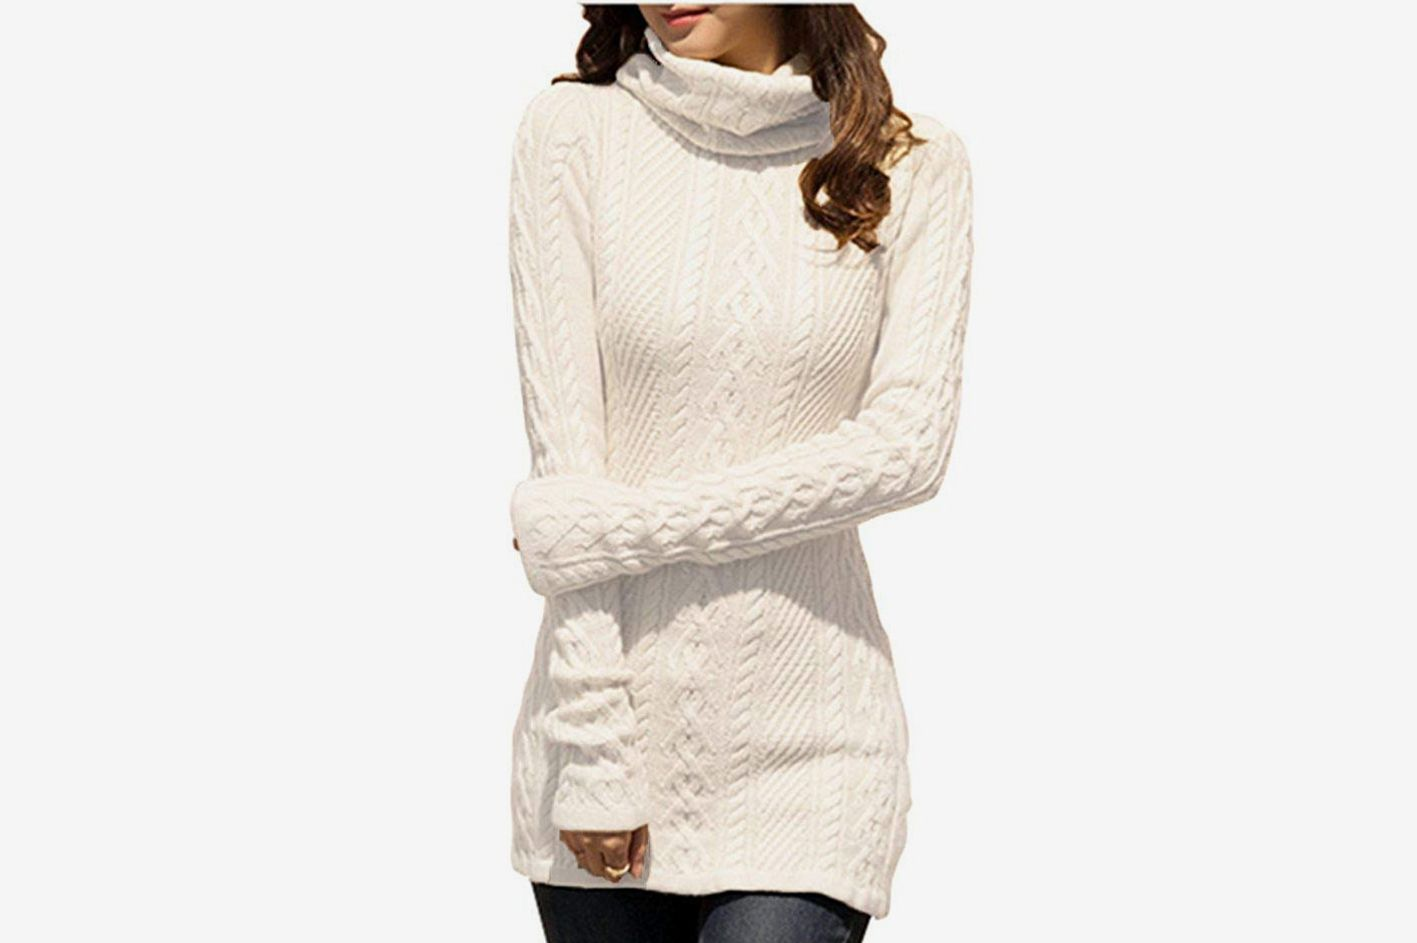 da68a6ab1079e v28 Women Polo Neck Knit Stretchable Long Sleeve Slim Sweater